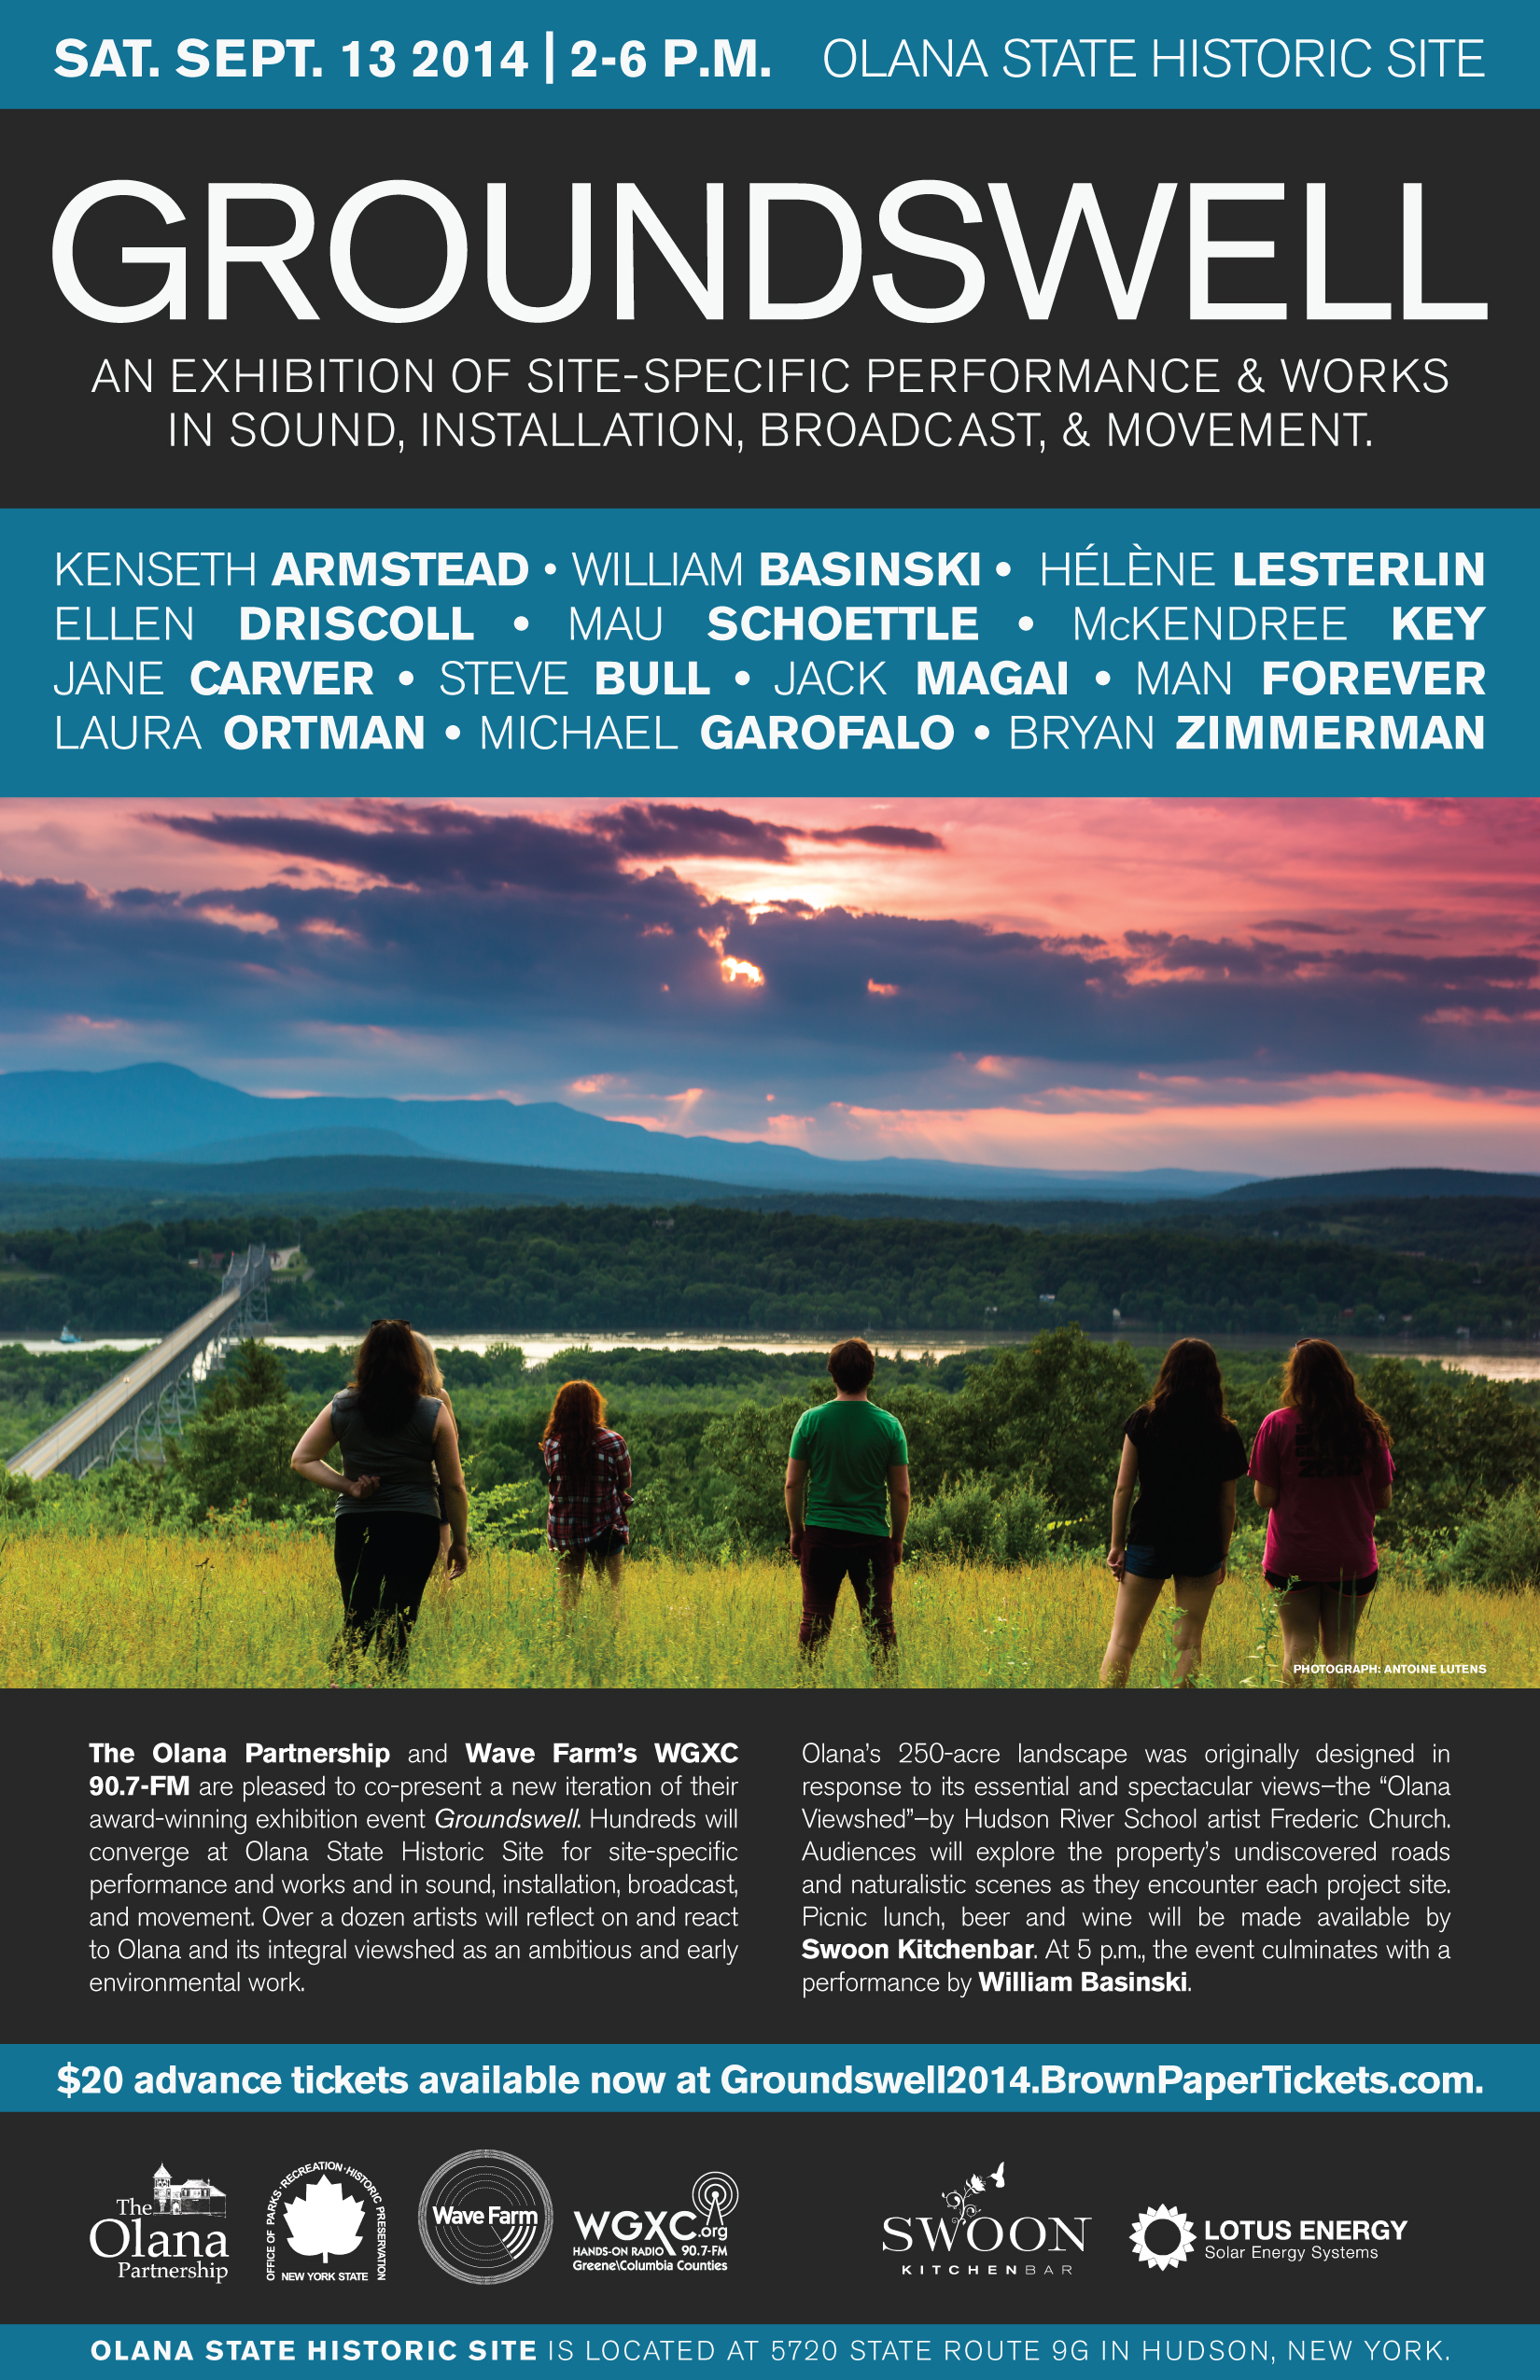 Groundswell 2014 Flier